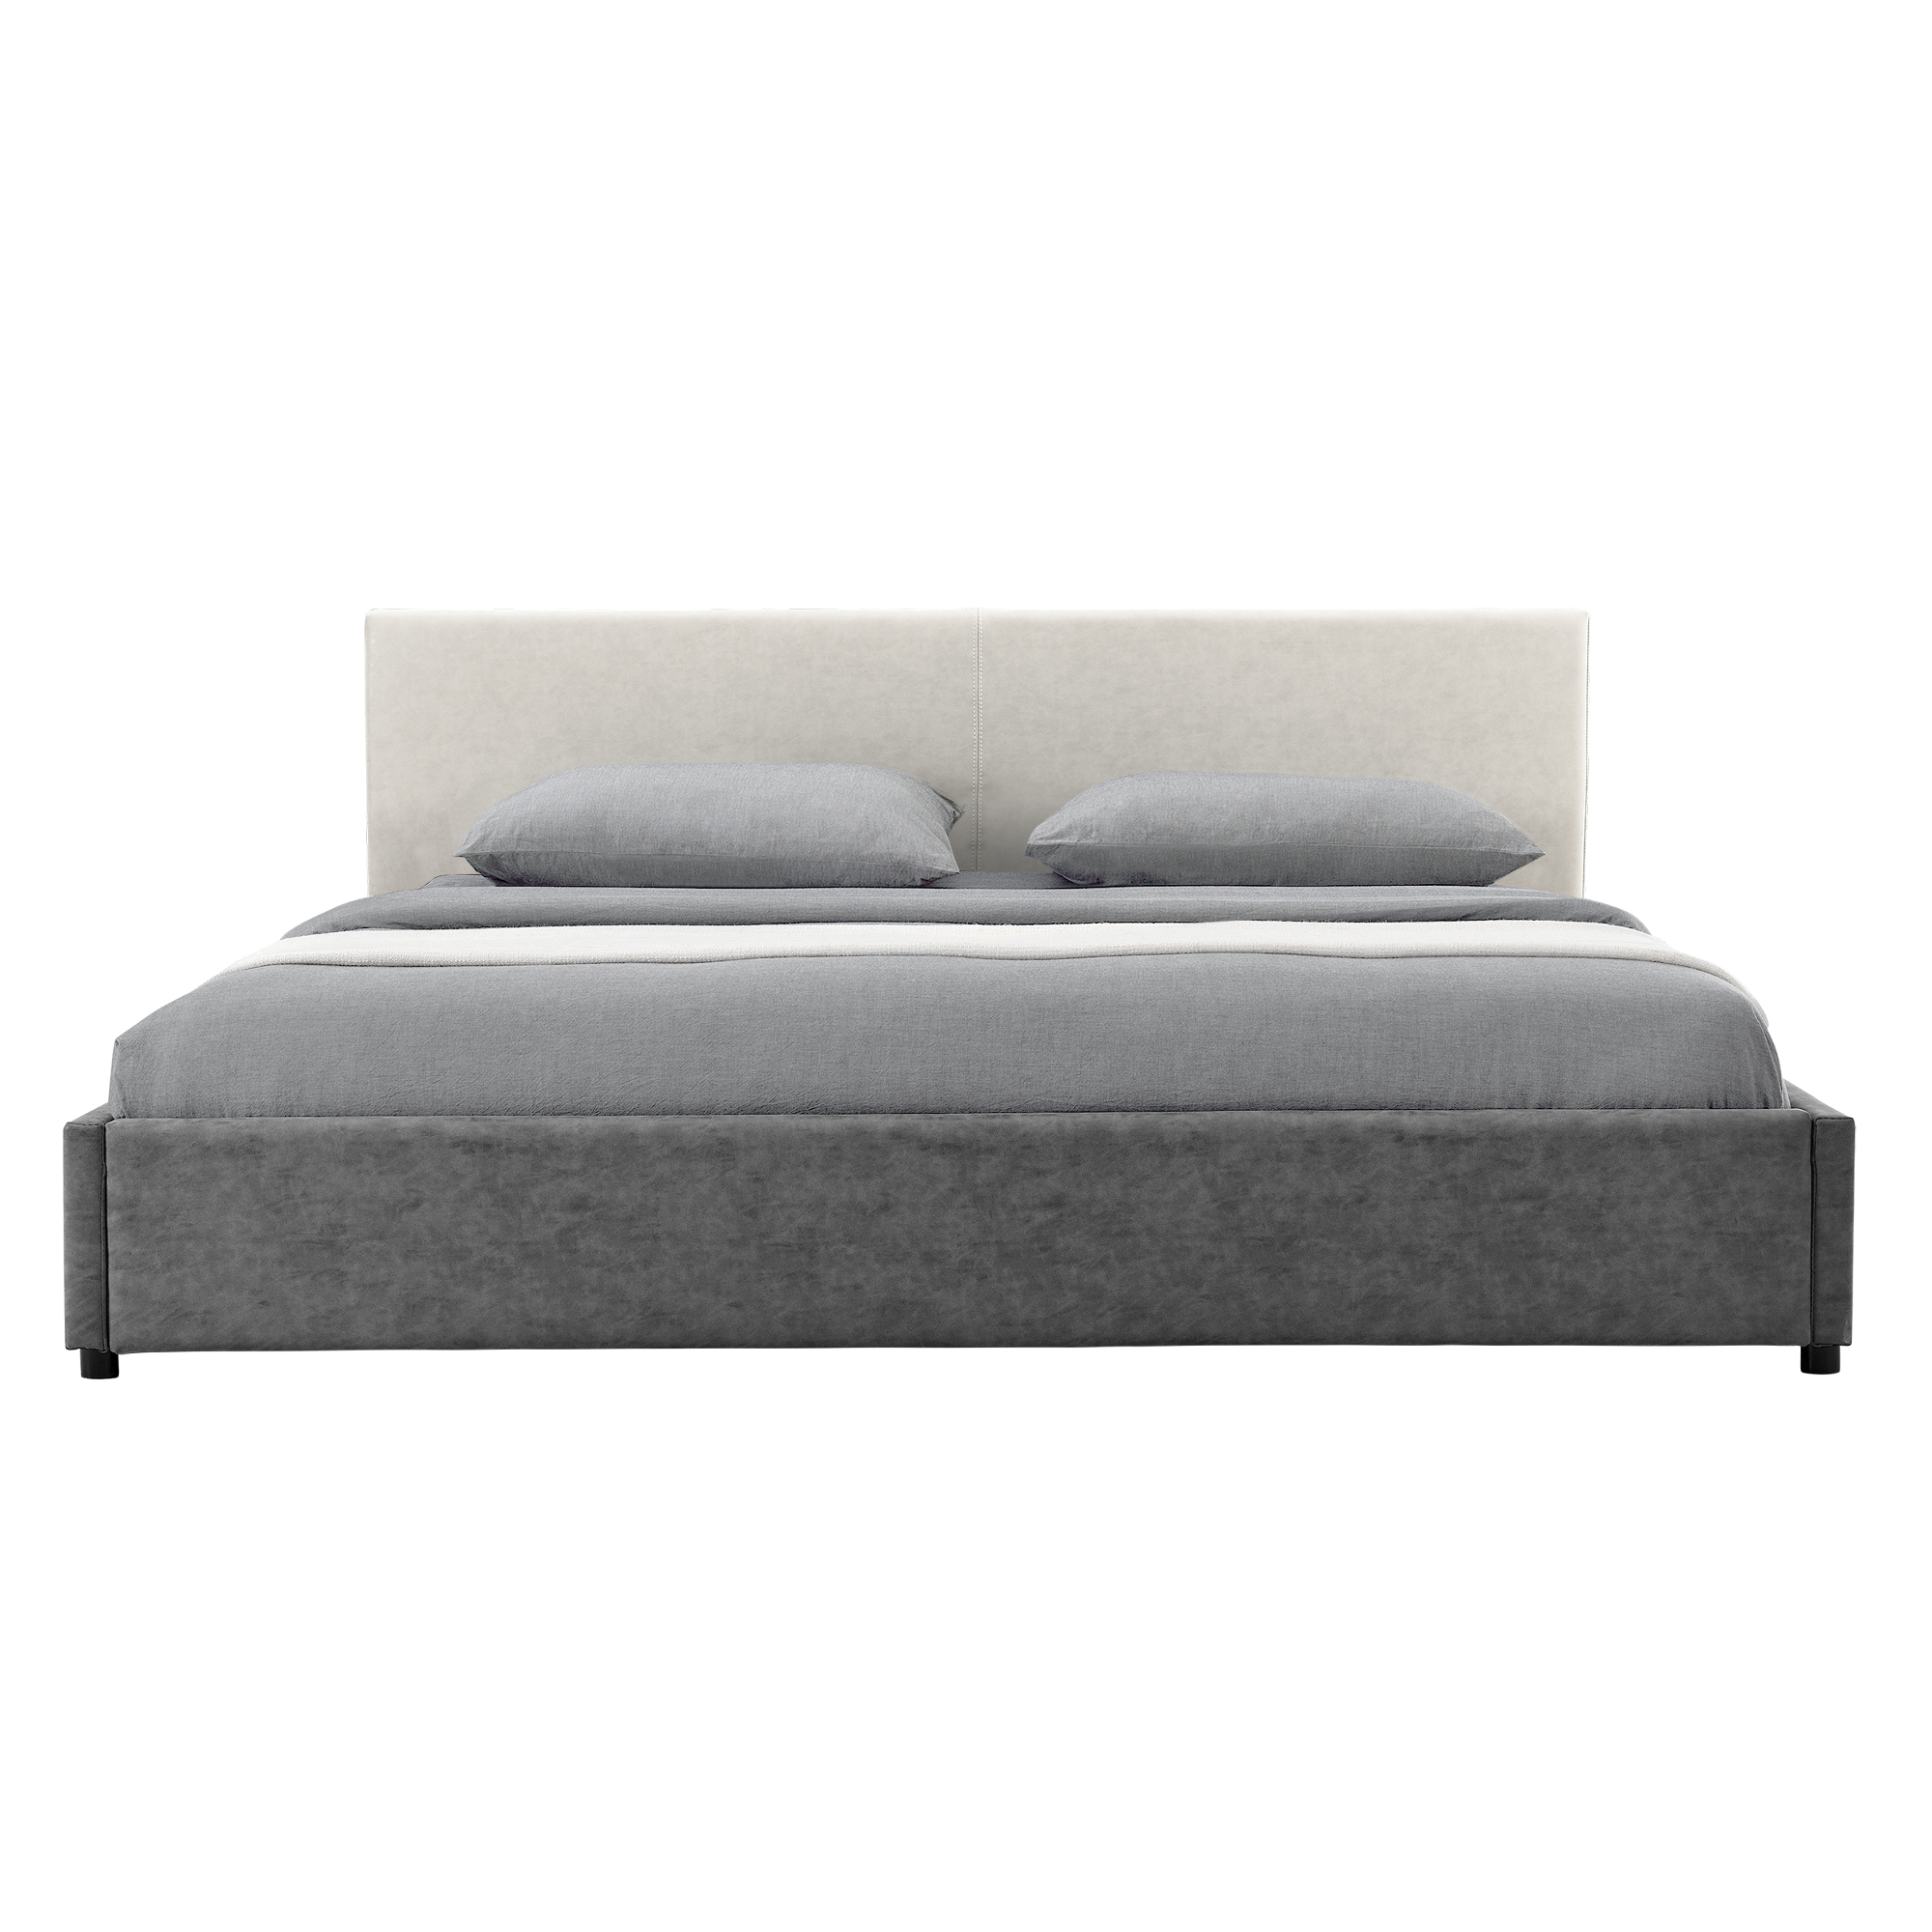 my bed upholstered bed mattress 180x200cm white grey leatherette double bed ebay. Black Bedroom Furniture Sets. Home Design Ideas